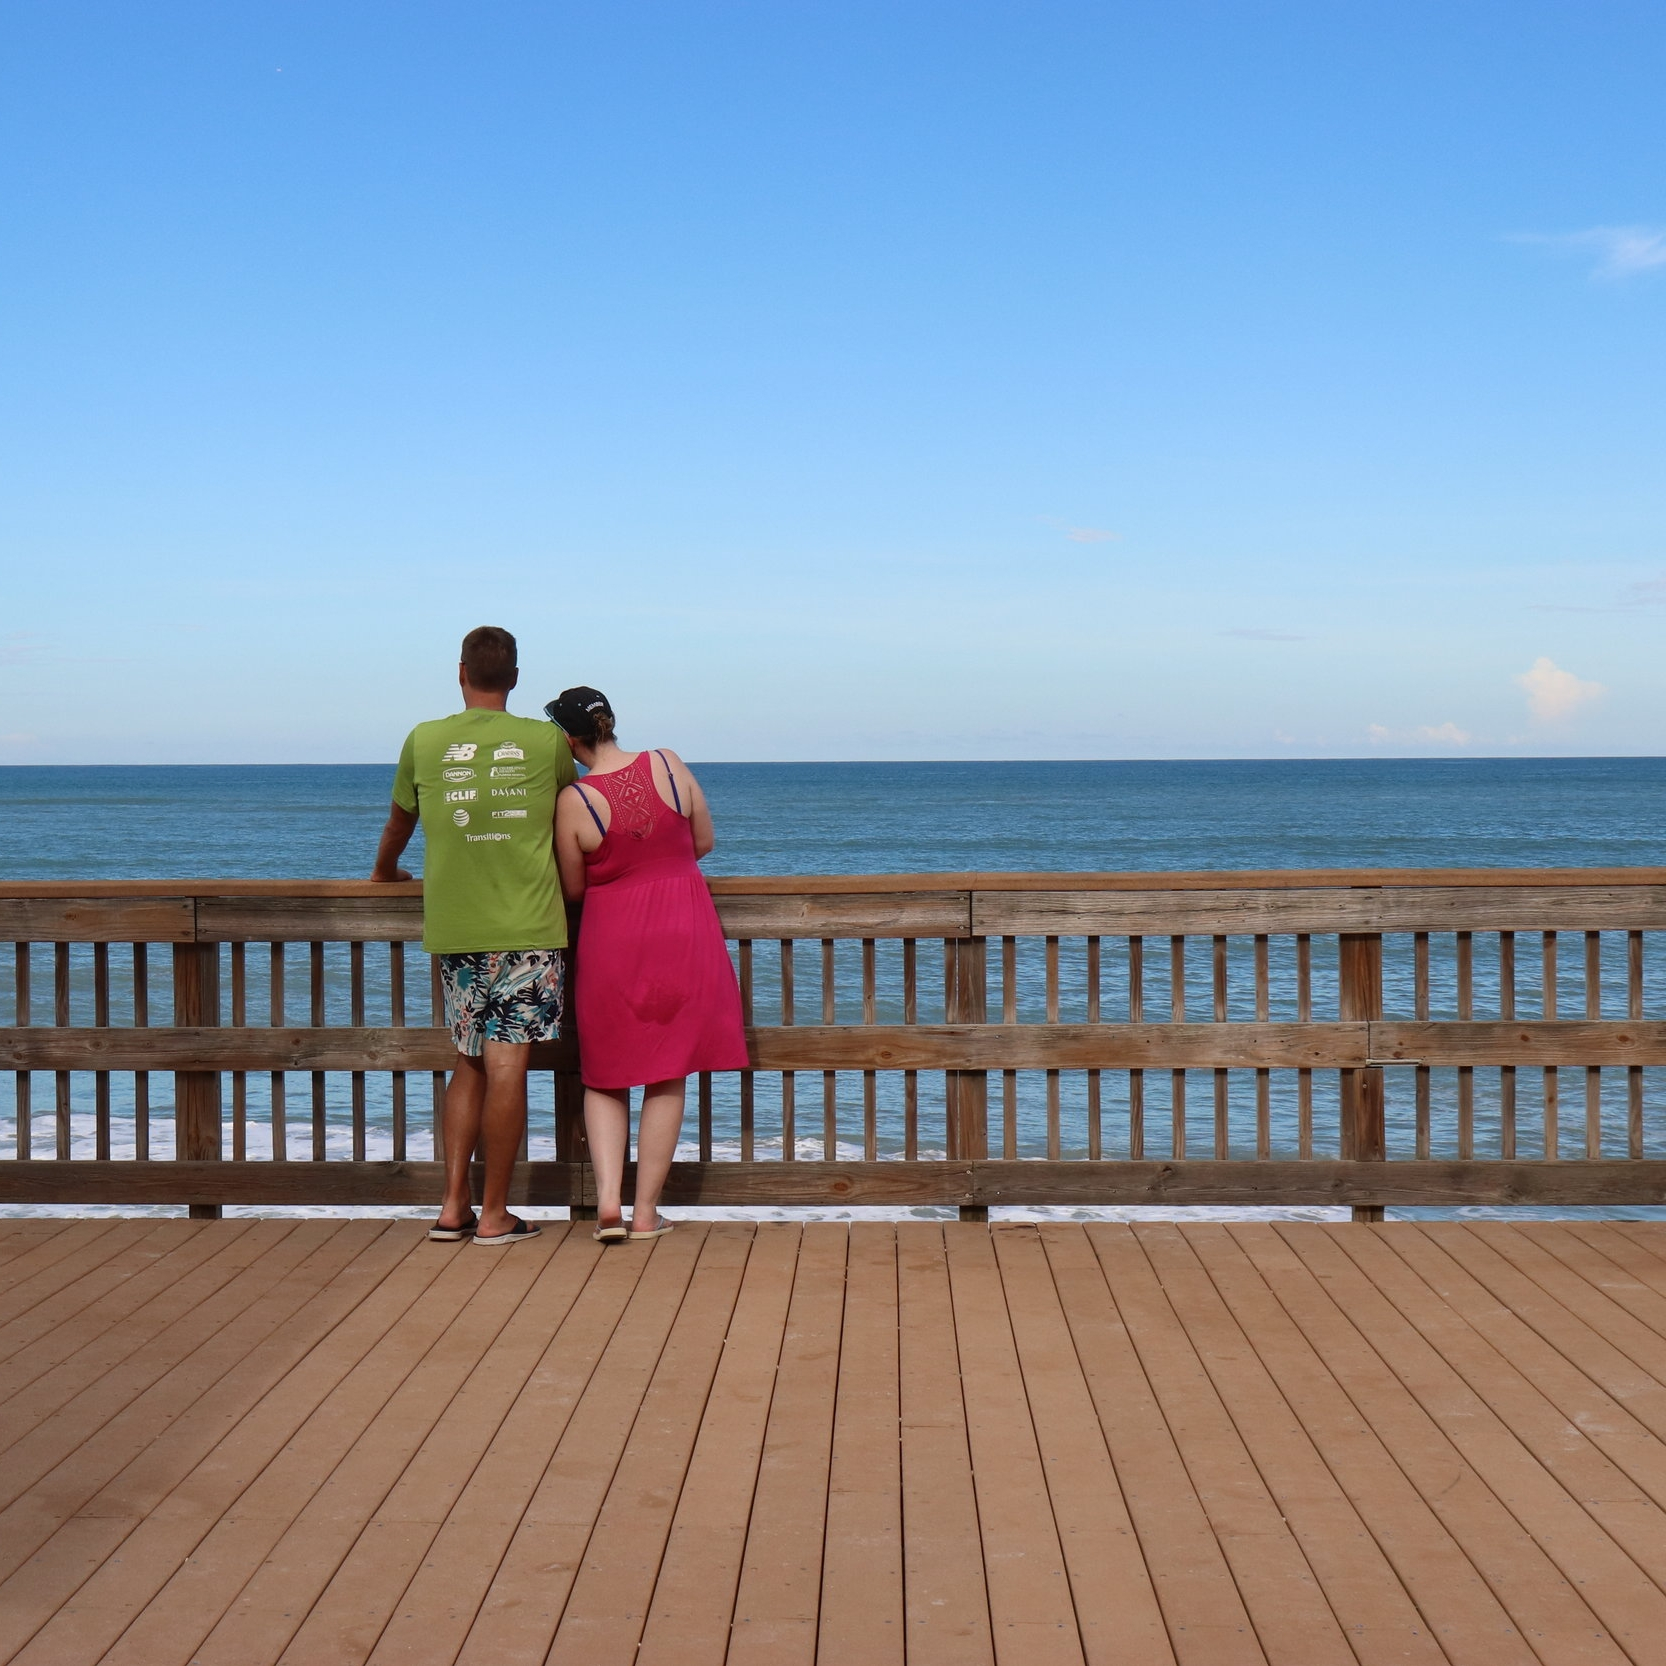 Enjoying a view of the sea, from the boardwalk.